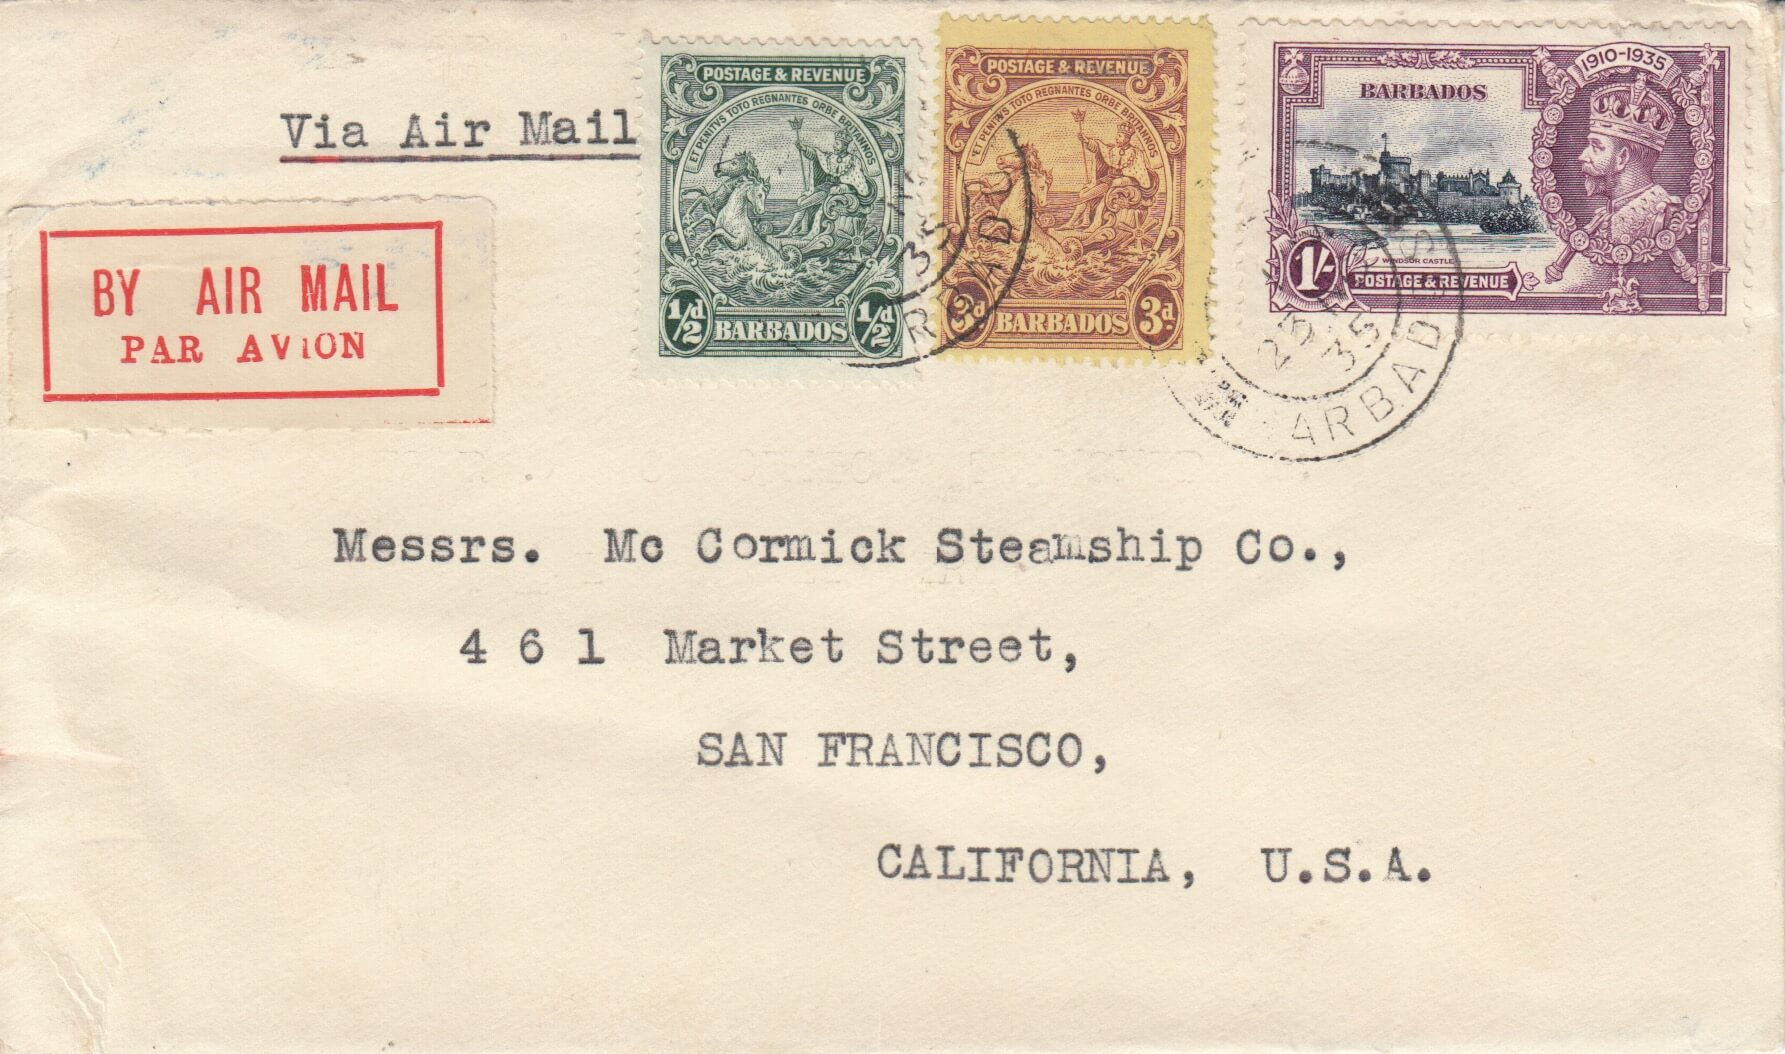 How did this cover from Barbados to San Francisco in 1935 pay the correct rate?